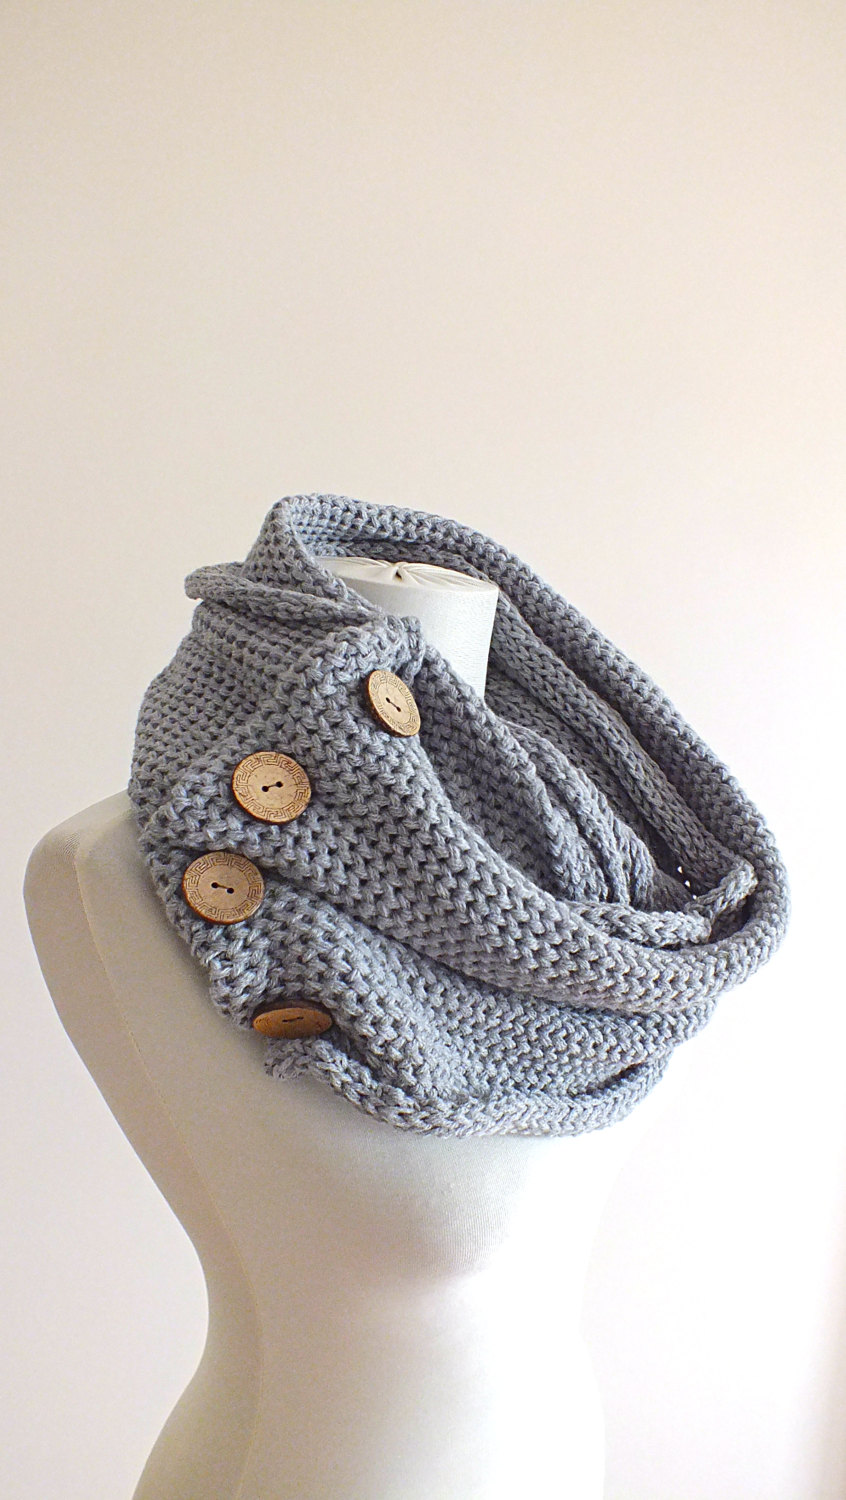 Knit button infinity scarf chunky knitted neck warner winter scarfs womens fashion scarf birthday gifts for her teens ladies